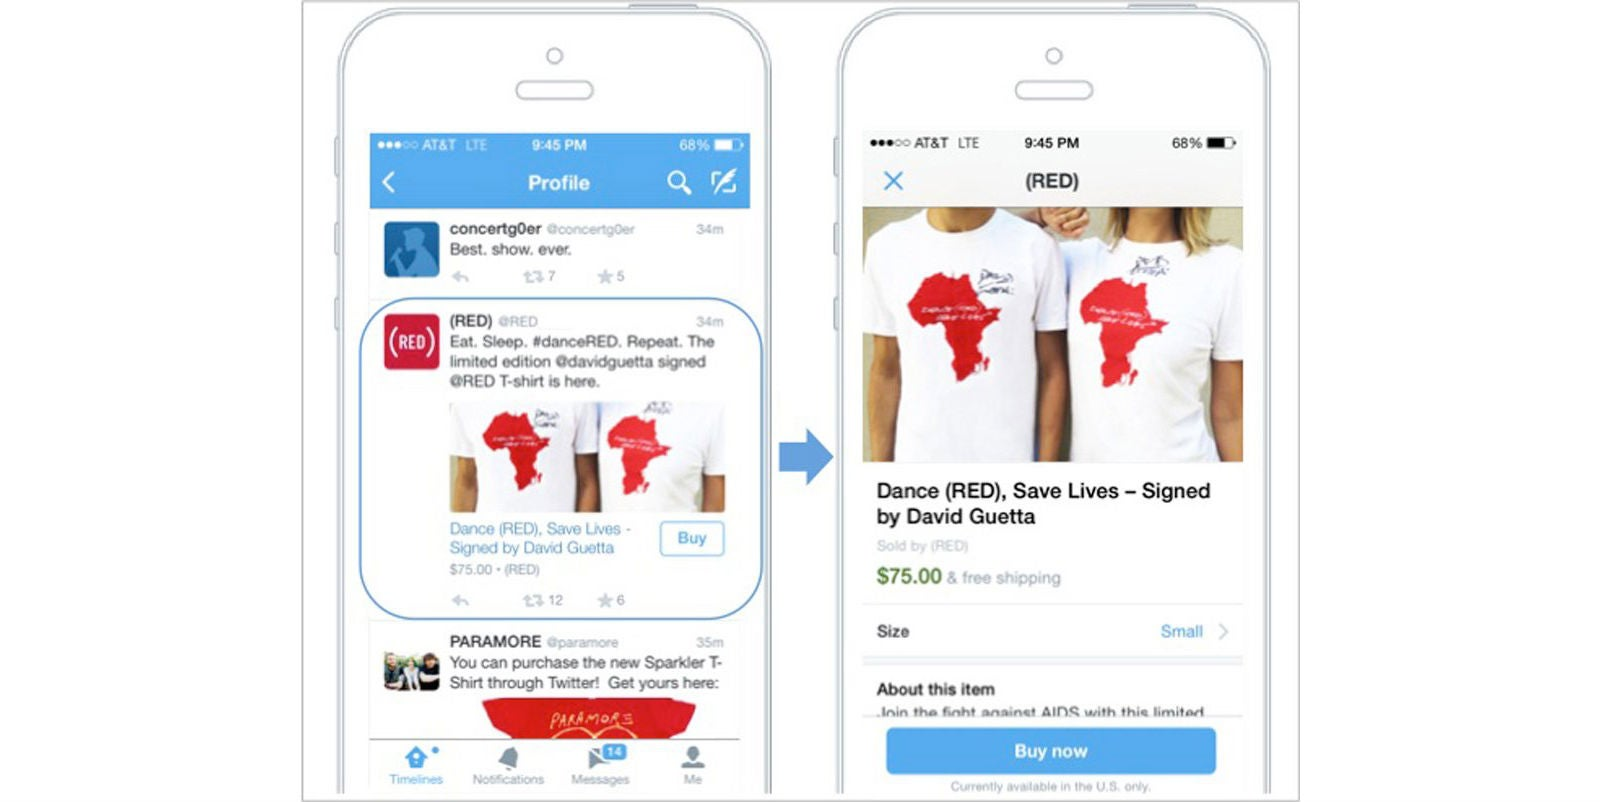 Twitter's New 'Buy' Button Lets You Make In-Tweet Purchases